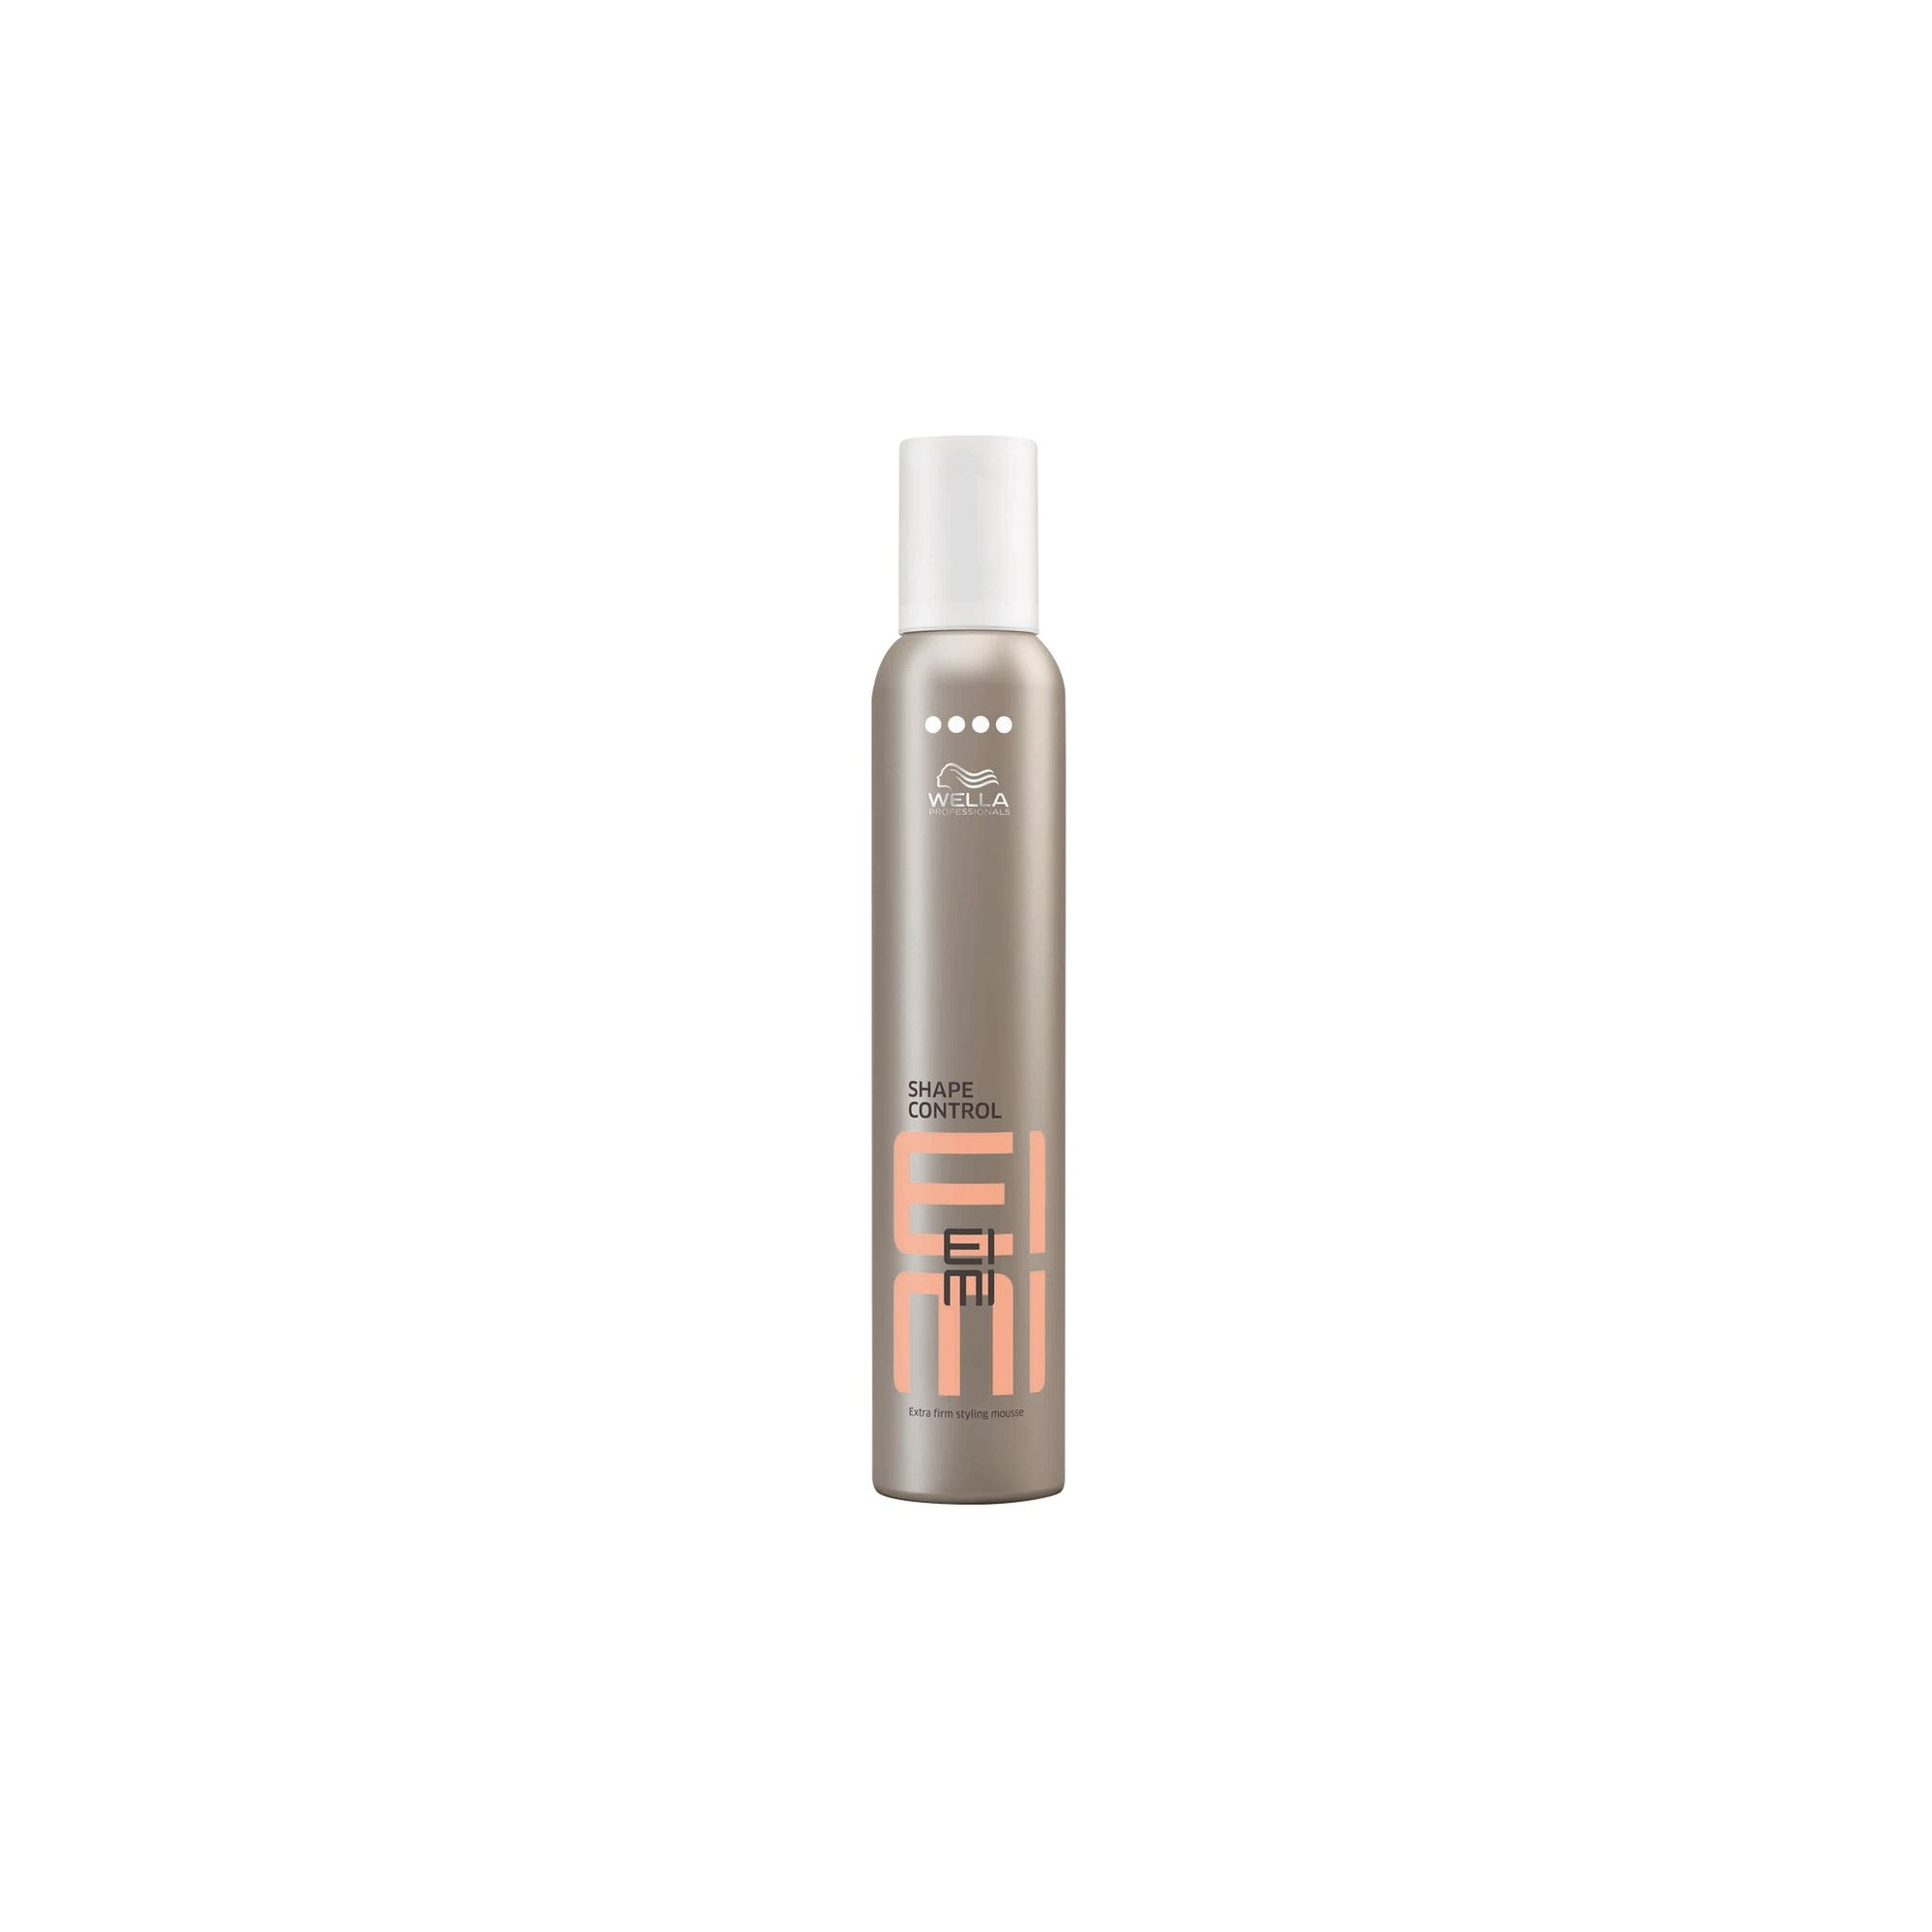 Wella Professionals EIMI Shape Control Styling Mousse 300ml